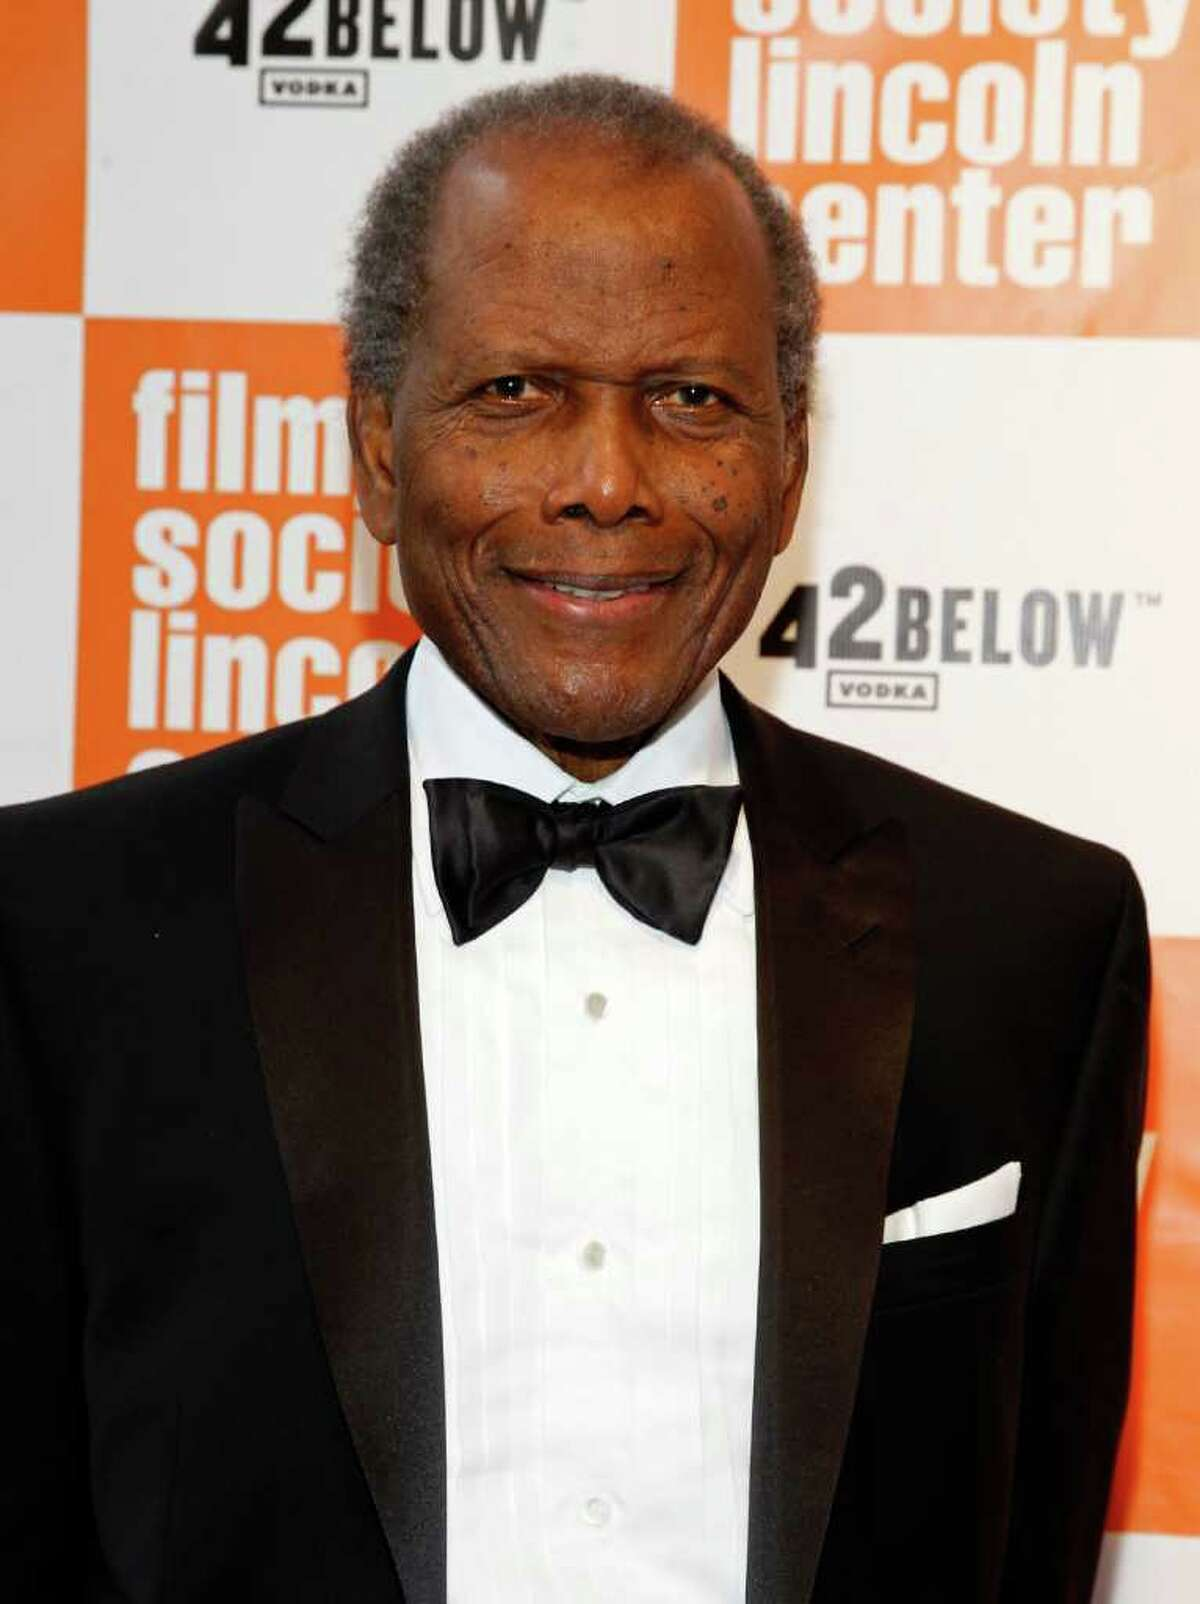 NEW YORK, NY - MAY 02: Honoree Sidney Poitier attends The Film Society of Lincoln Center's presentation of the 38th Annual Chaplin Award at Alice Tully Hall on May 2, 2011 in New York City. (Photo by Mark Von Holden/Getty Images) *** Local Caption *** Sidney Poitier;